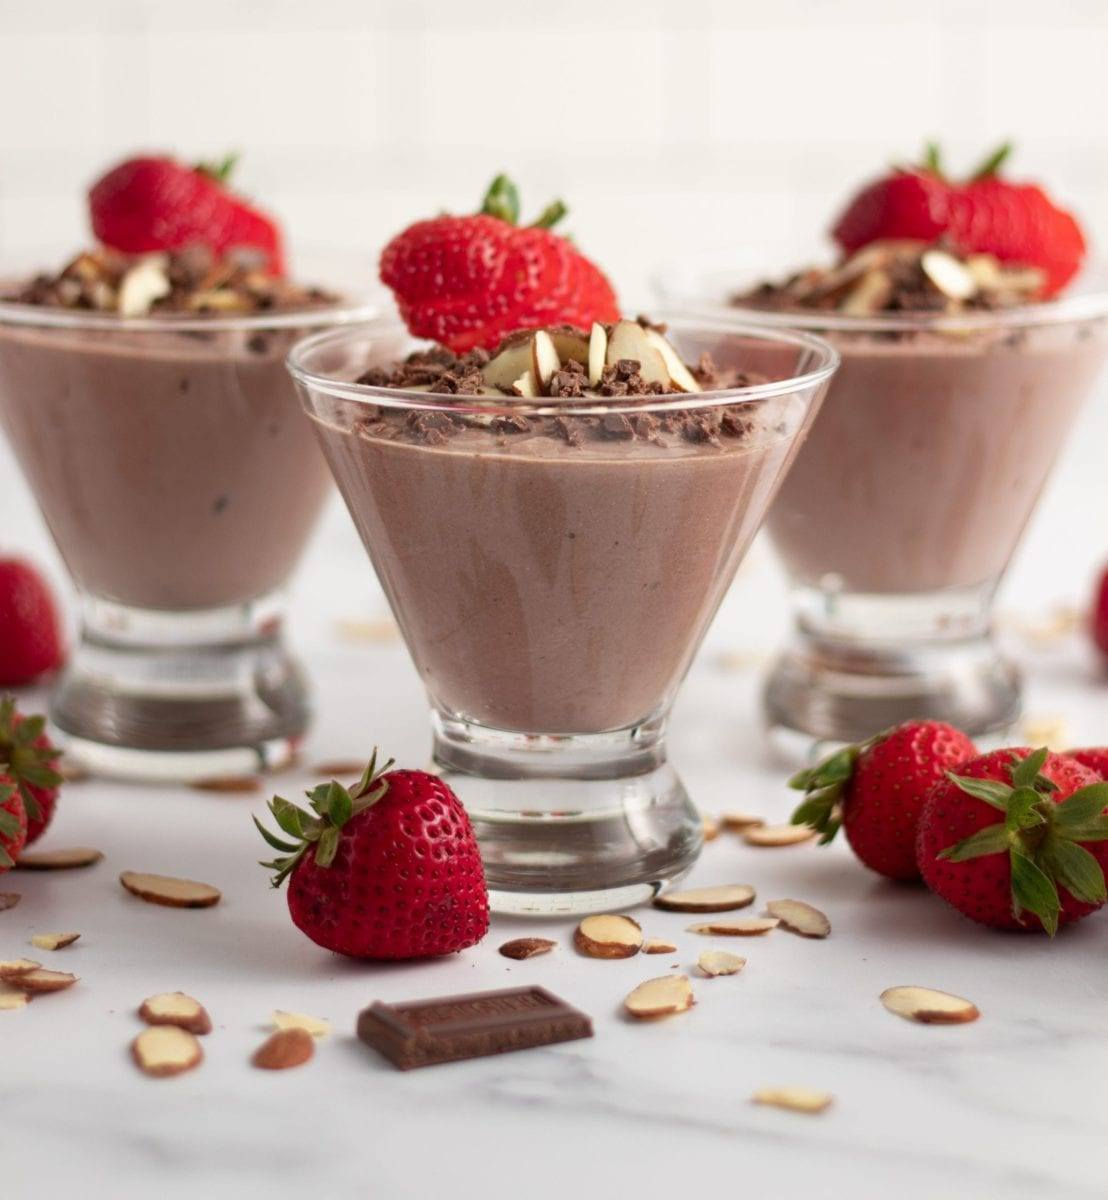 Chocolate Almond Yogurt